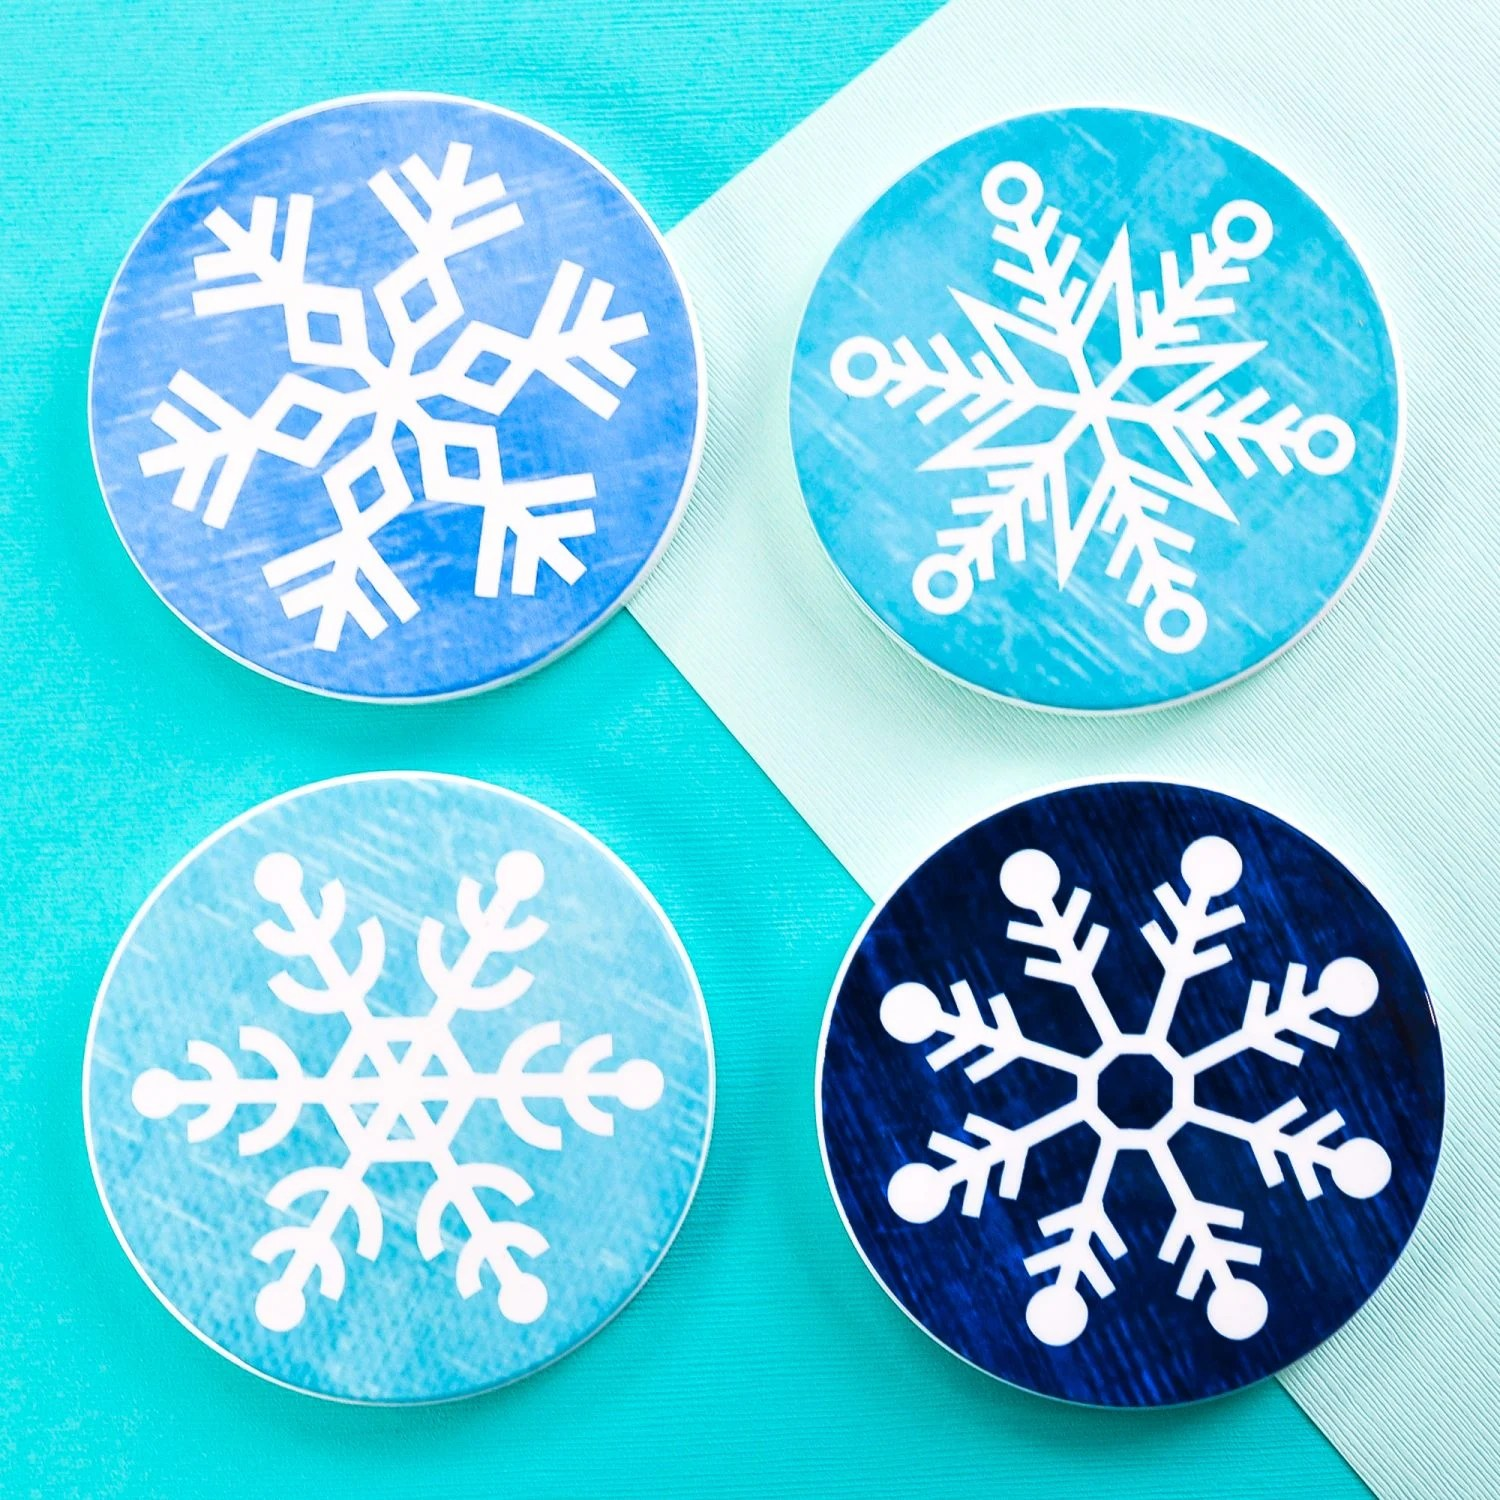 Four finished snowflake coasters on teal background